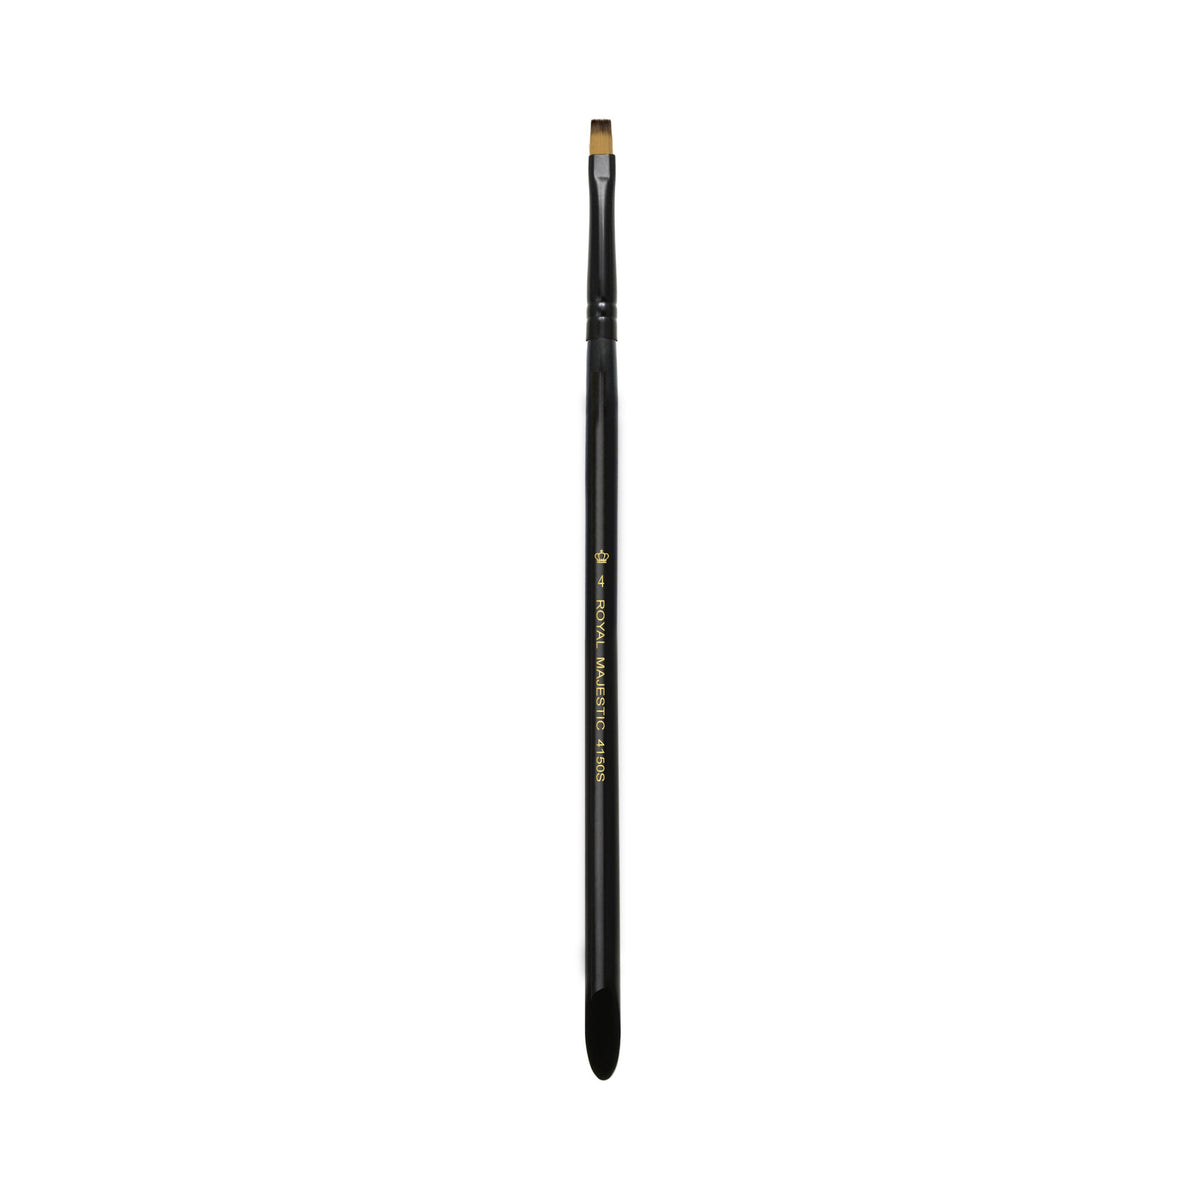 Royal & Langnickel Majestic Flat S4 Brush - Red Carpet FX - Professional Makeup